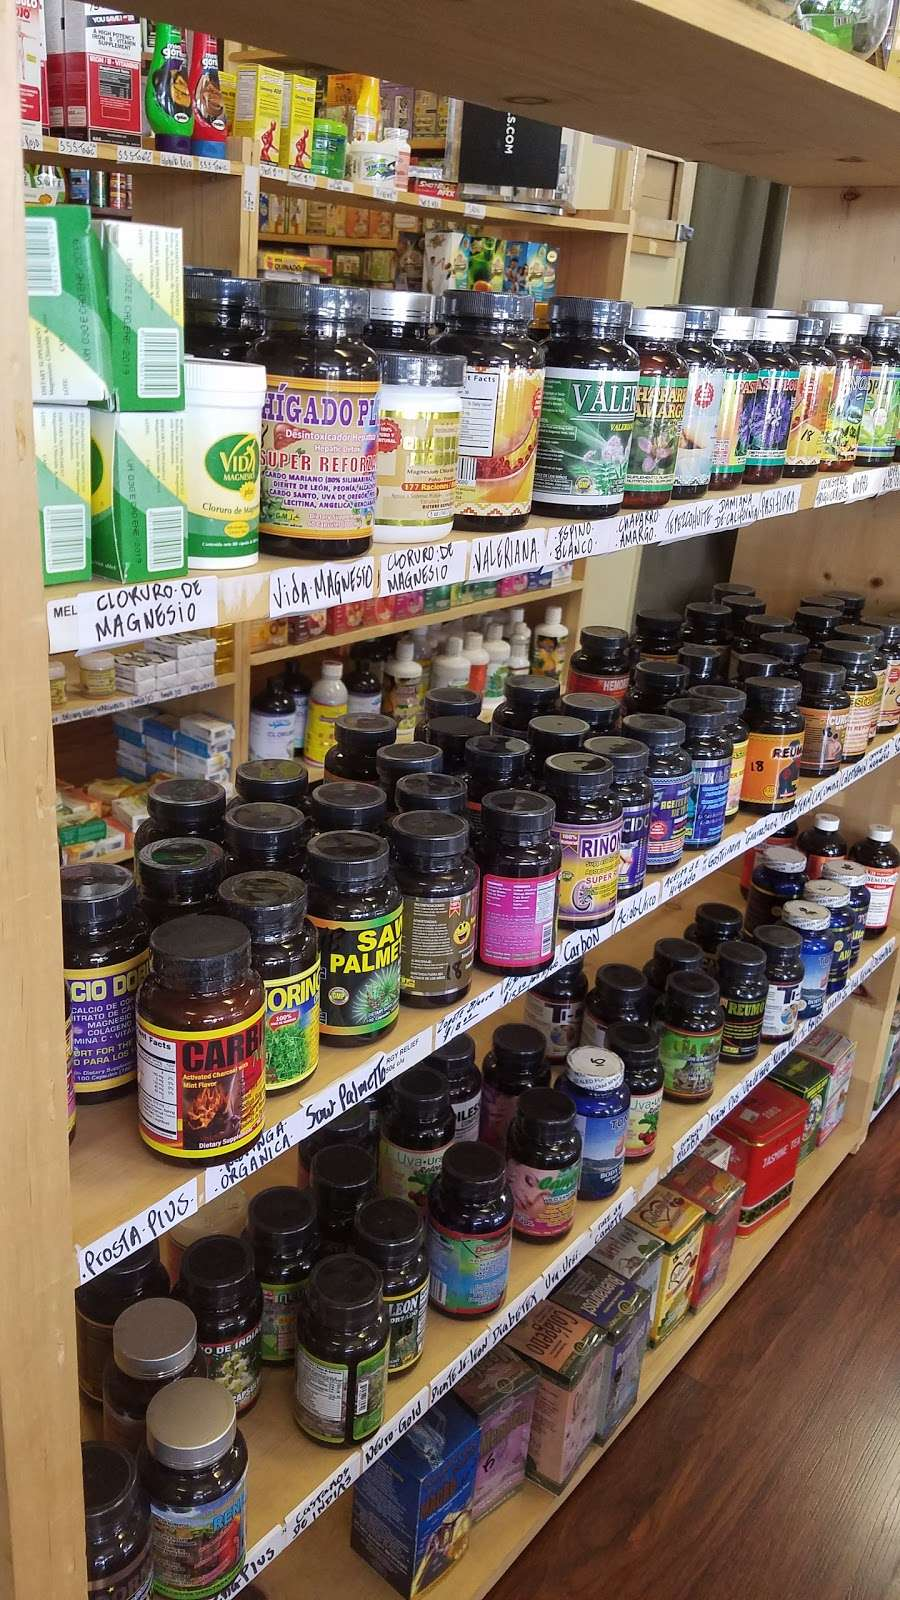 Pharma Mexicana - pharmacy  | Photo 1 of 5 | Address: 1285 S Garey Ave unit b, Pomona, CA 91766, USA